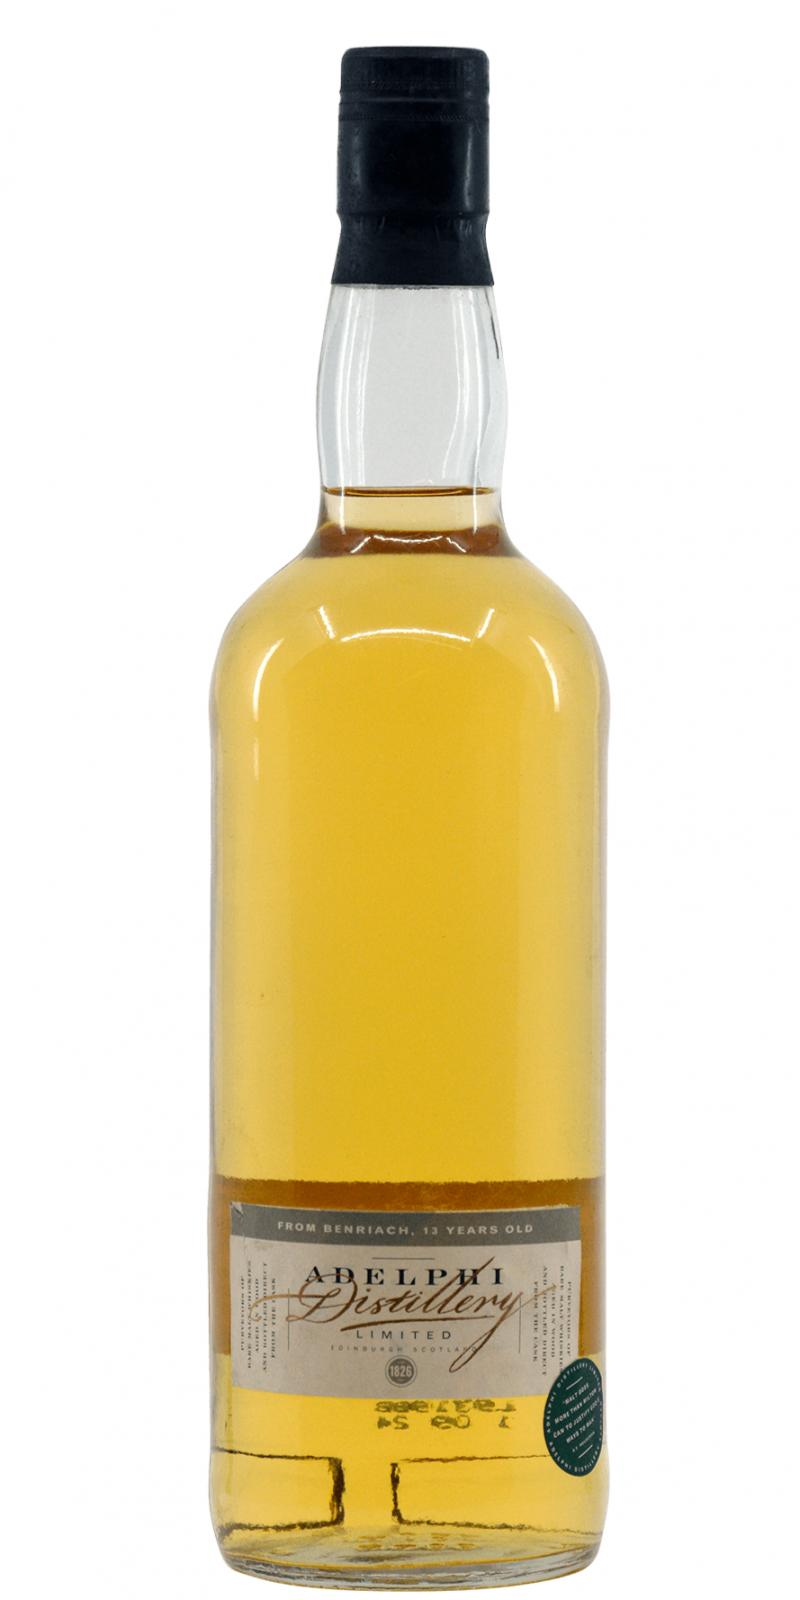 BenRiach 13-year-old